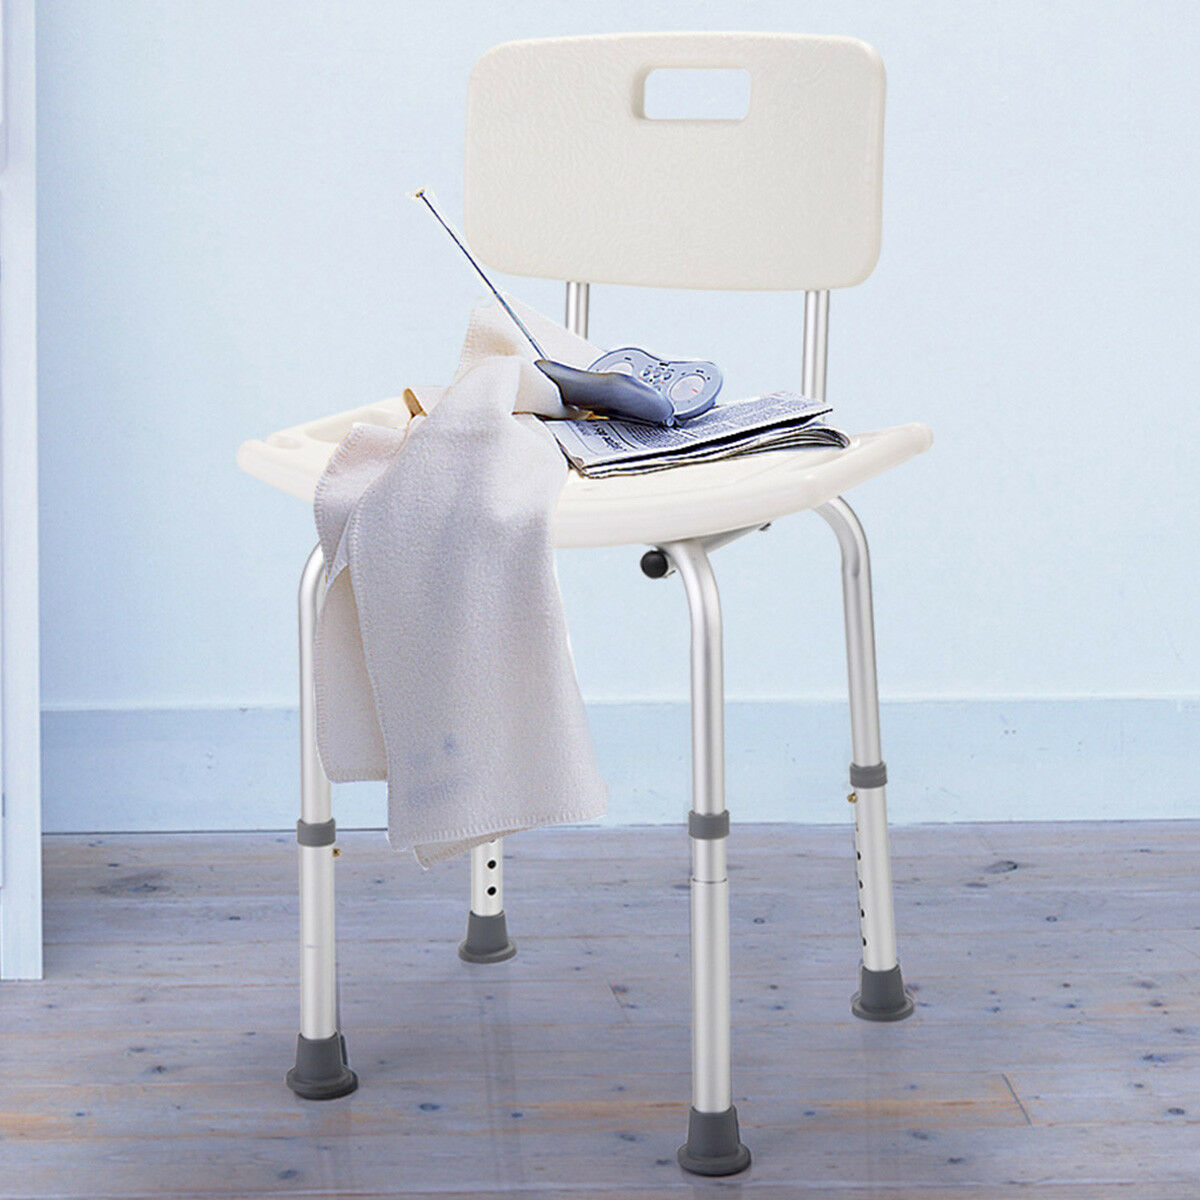 6 Height Adjustable Medical Shower Bath Chair Stool Detachable ...